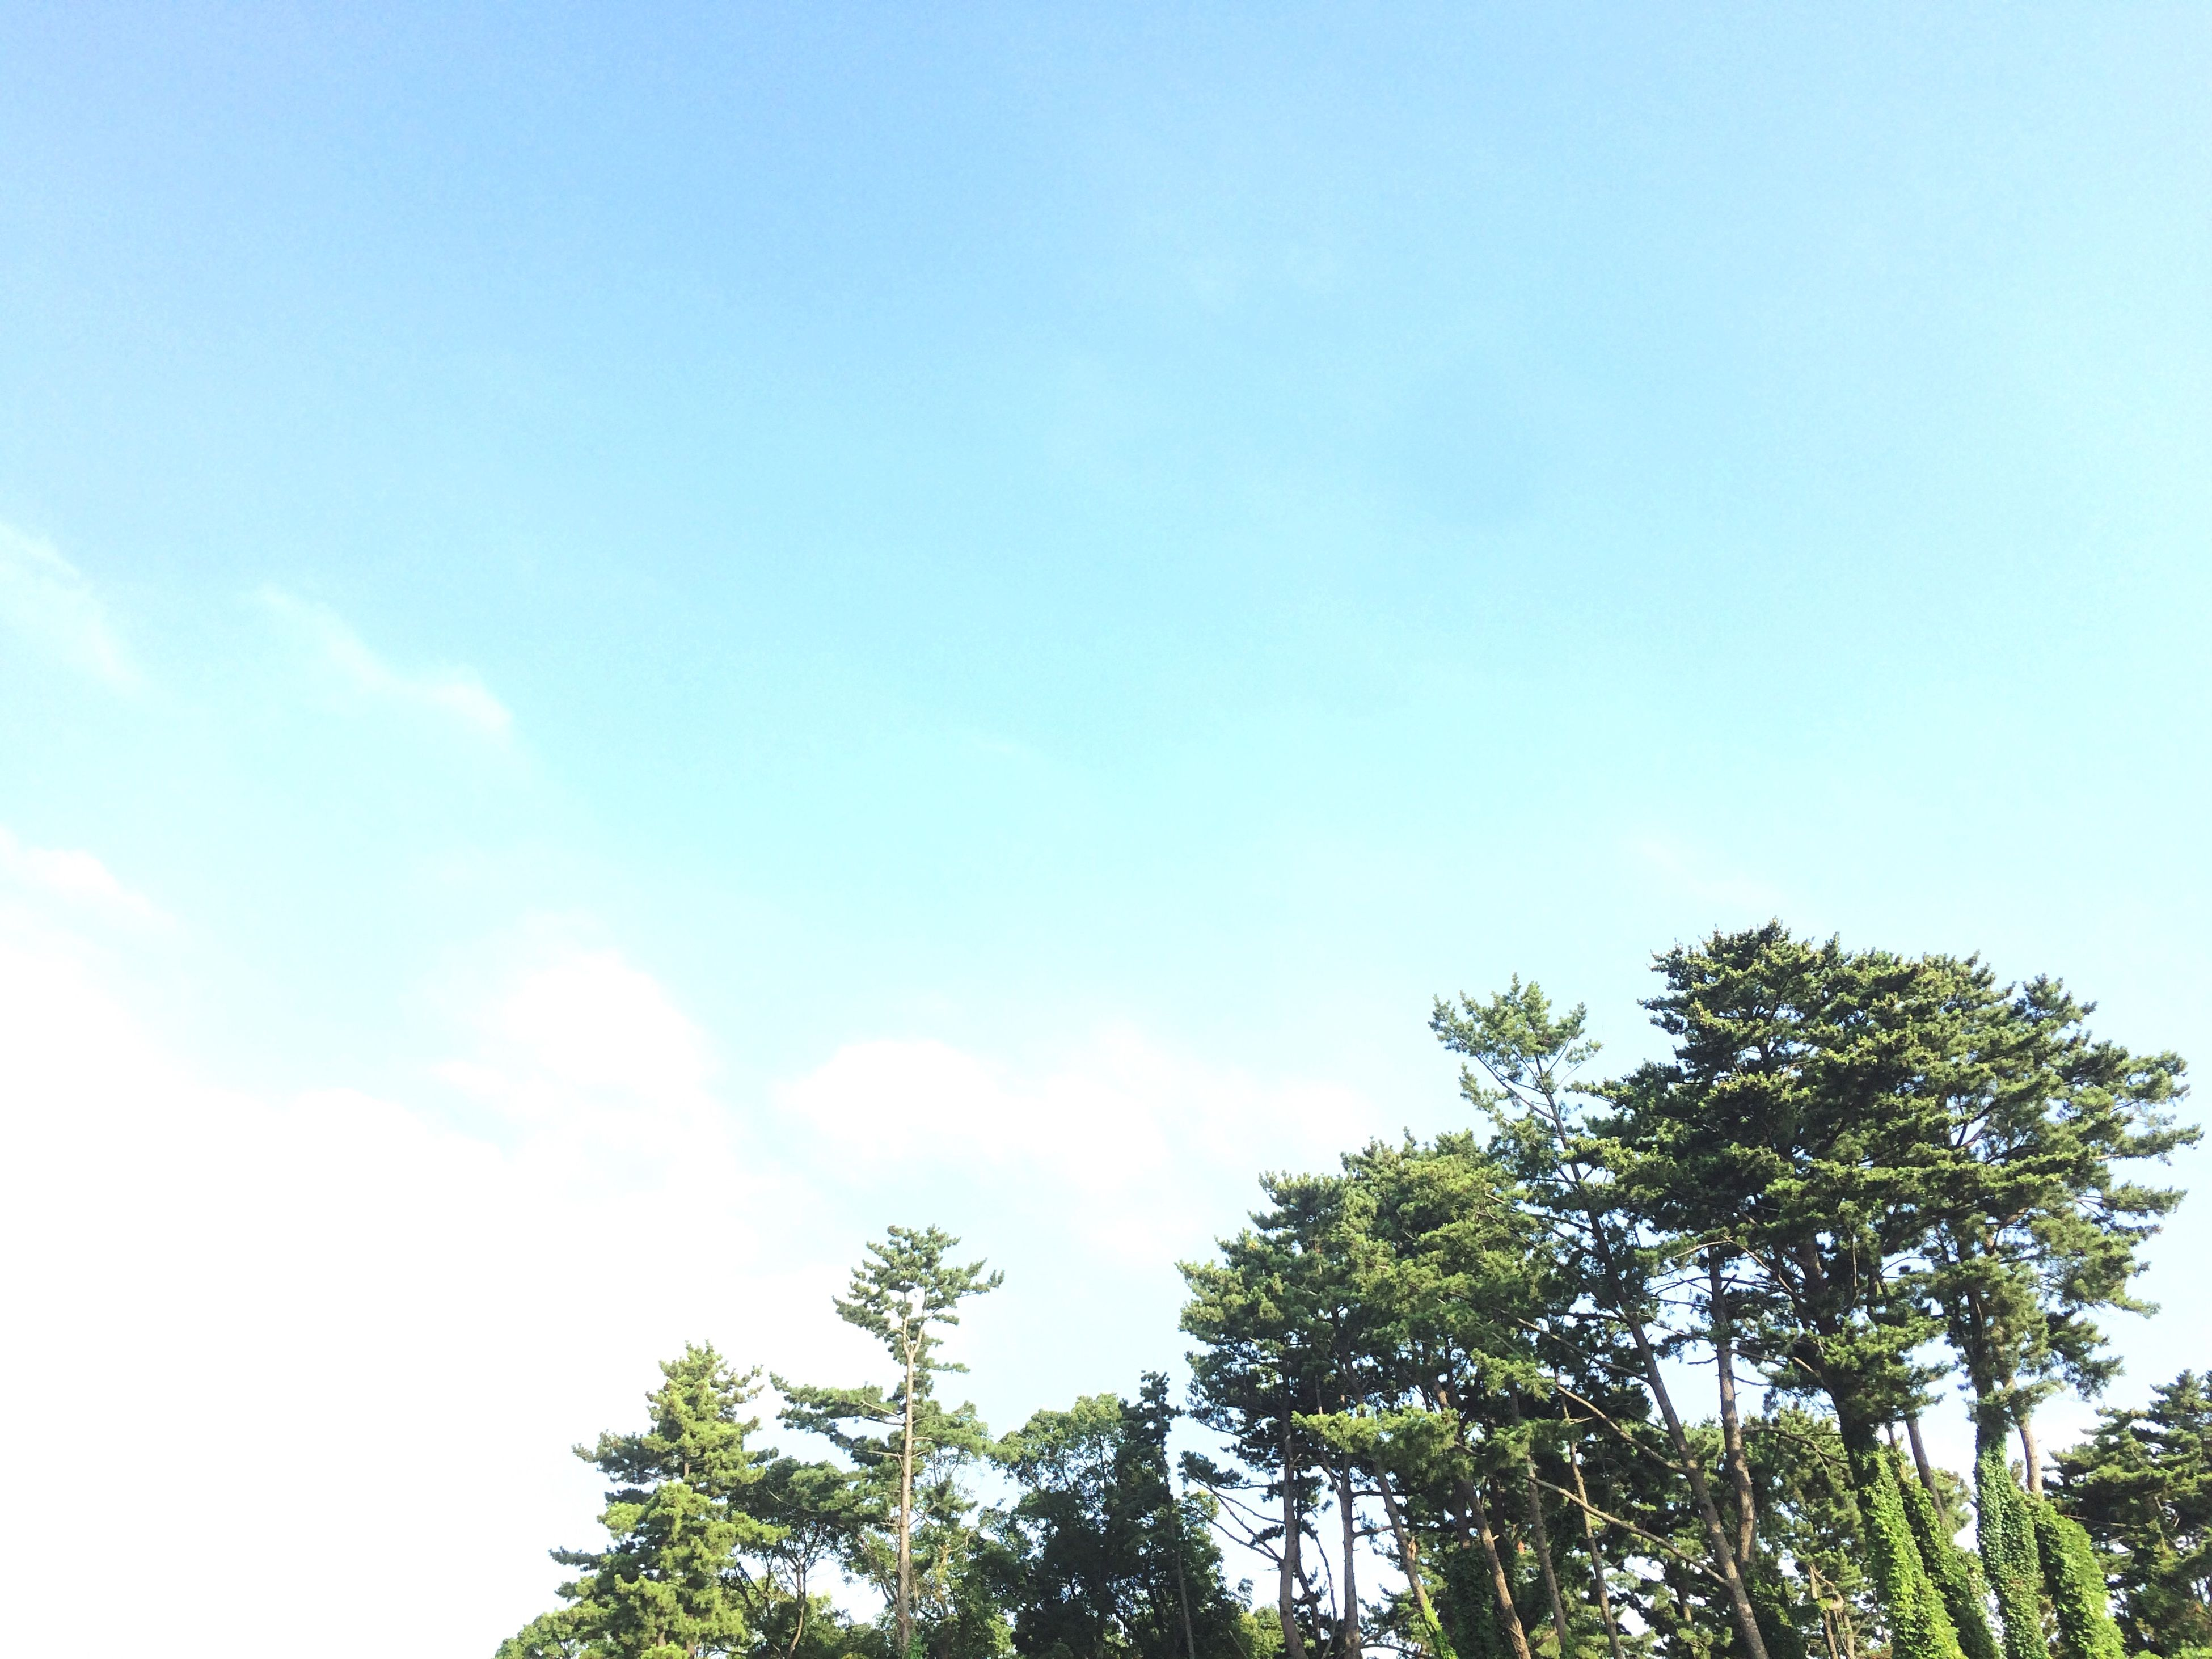 low angle view, tree, growth, sky, blue, copy space, clear sky, beauty in nature, nature, tranquility, high section, treetop, scenics, tranquil scene, green color, day, outdoors, no people, branch, idyllic